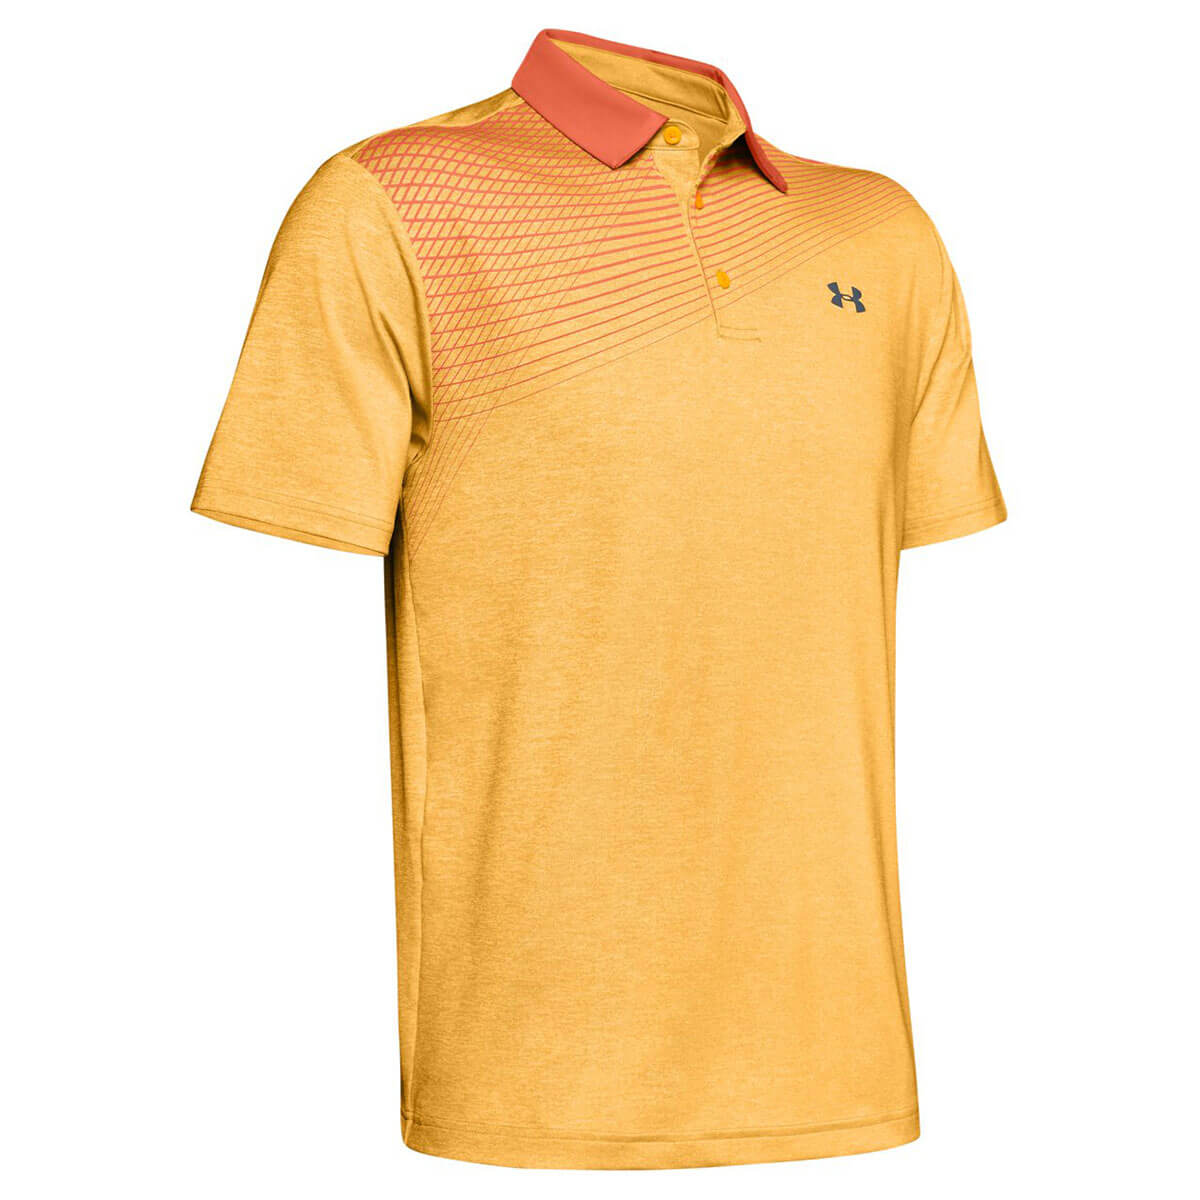 Under-Armour-Mens-2019-Playoff-Polo-2-0-Breathable-Light-Stretch-Polo-Shirt thumbnail 78